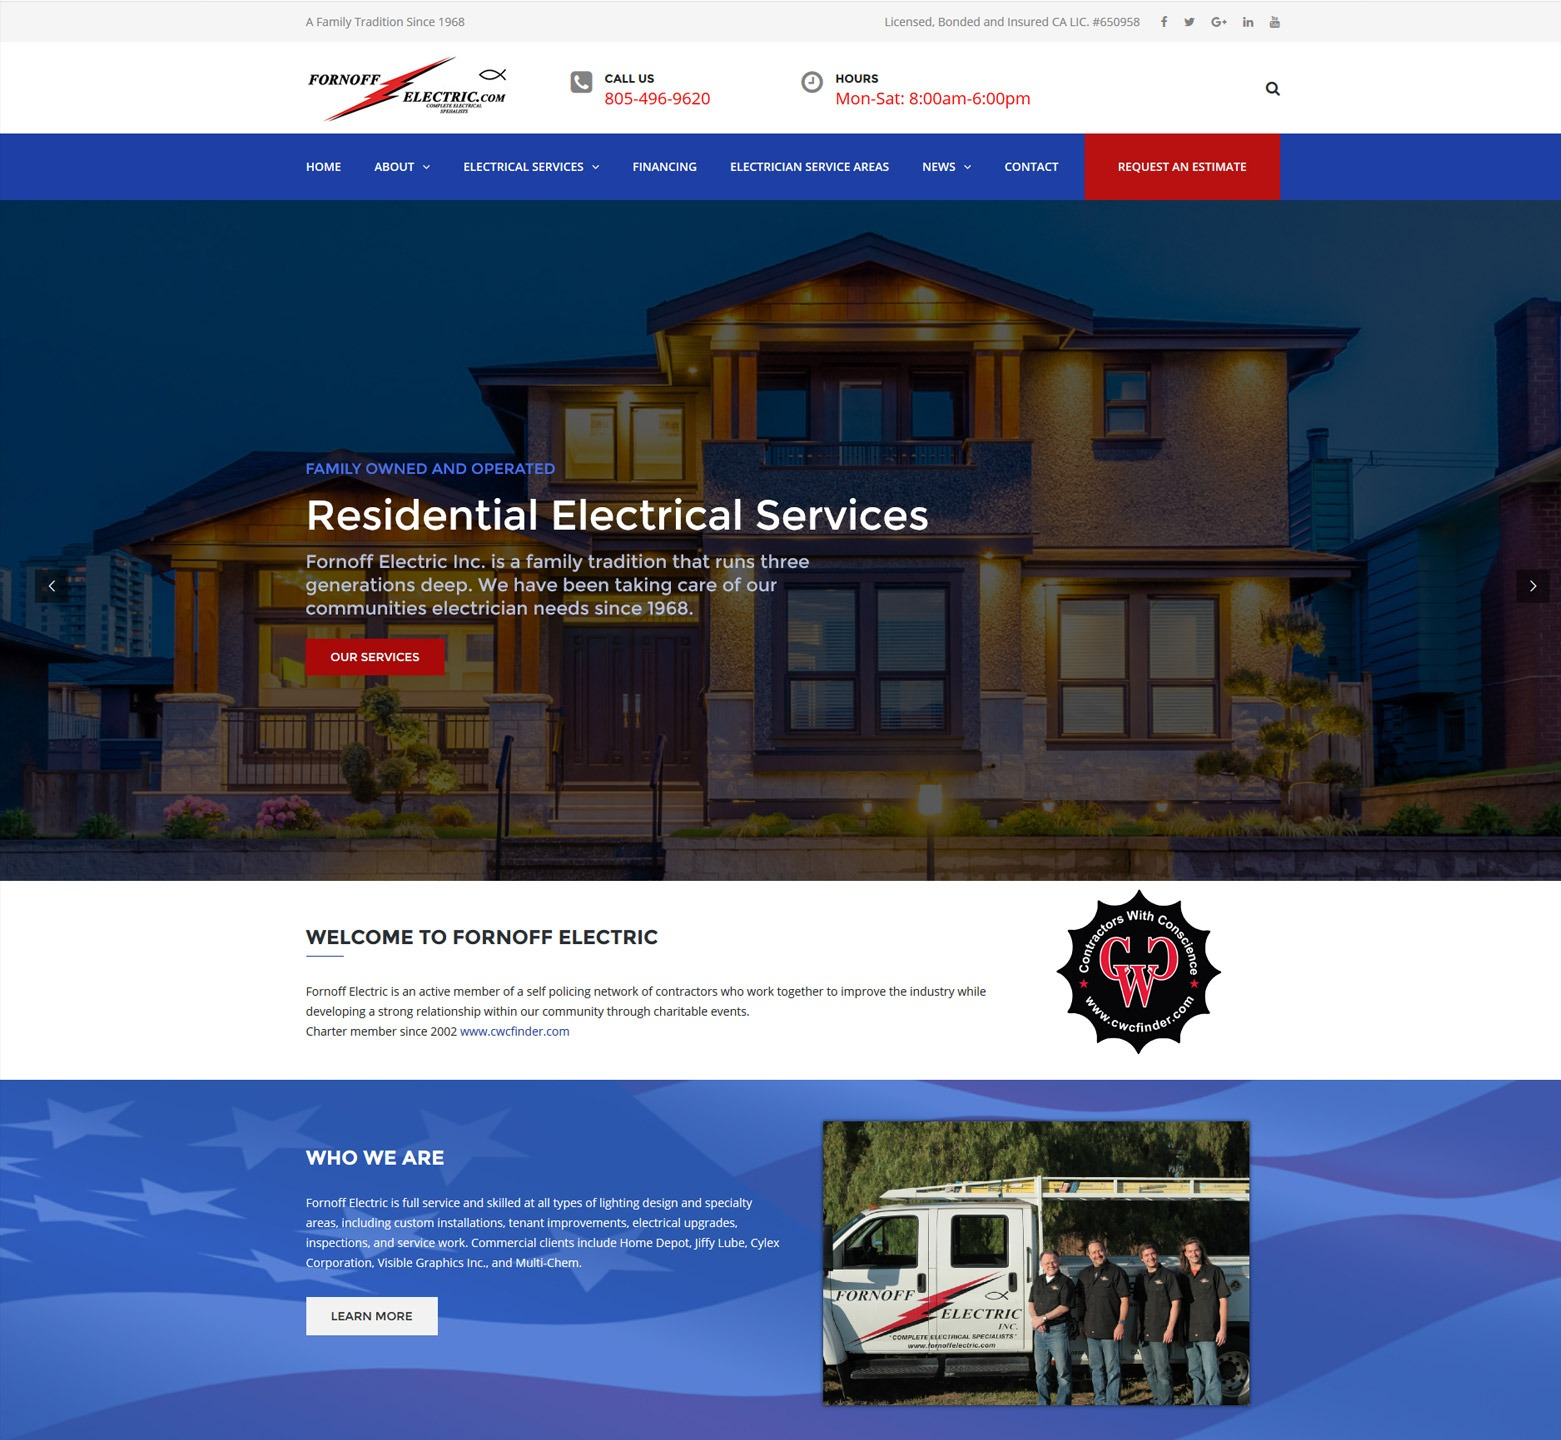 LA Angeles Electric Company Web Design Company